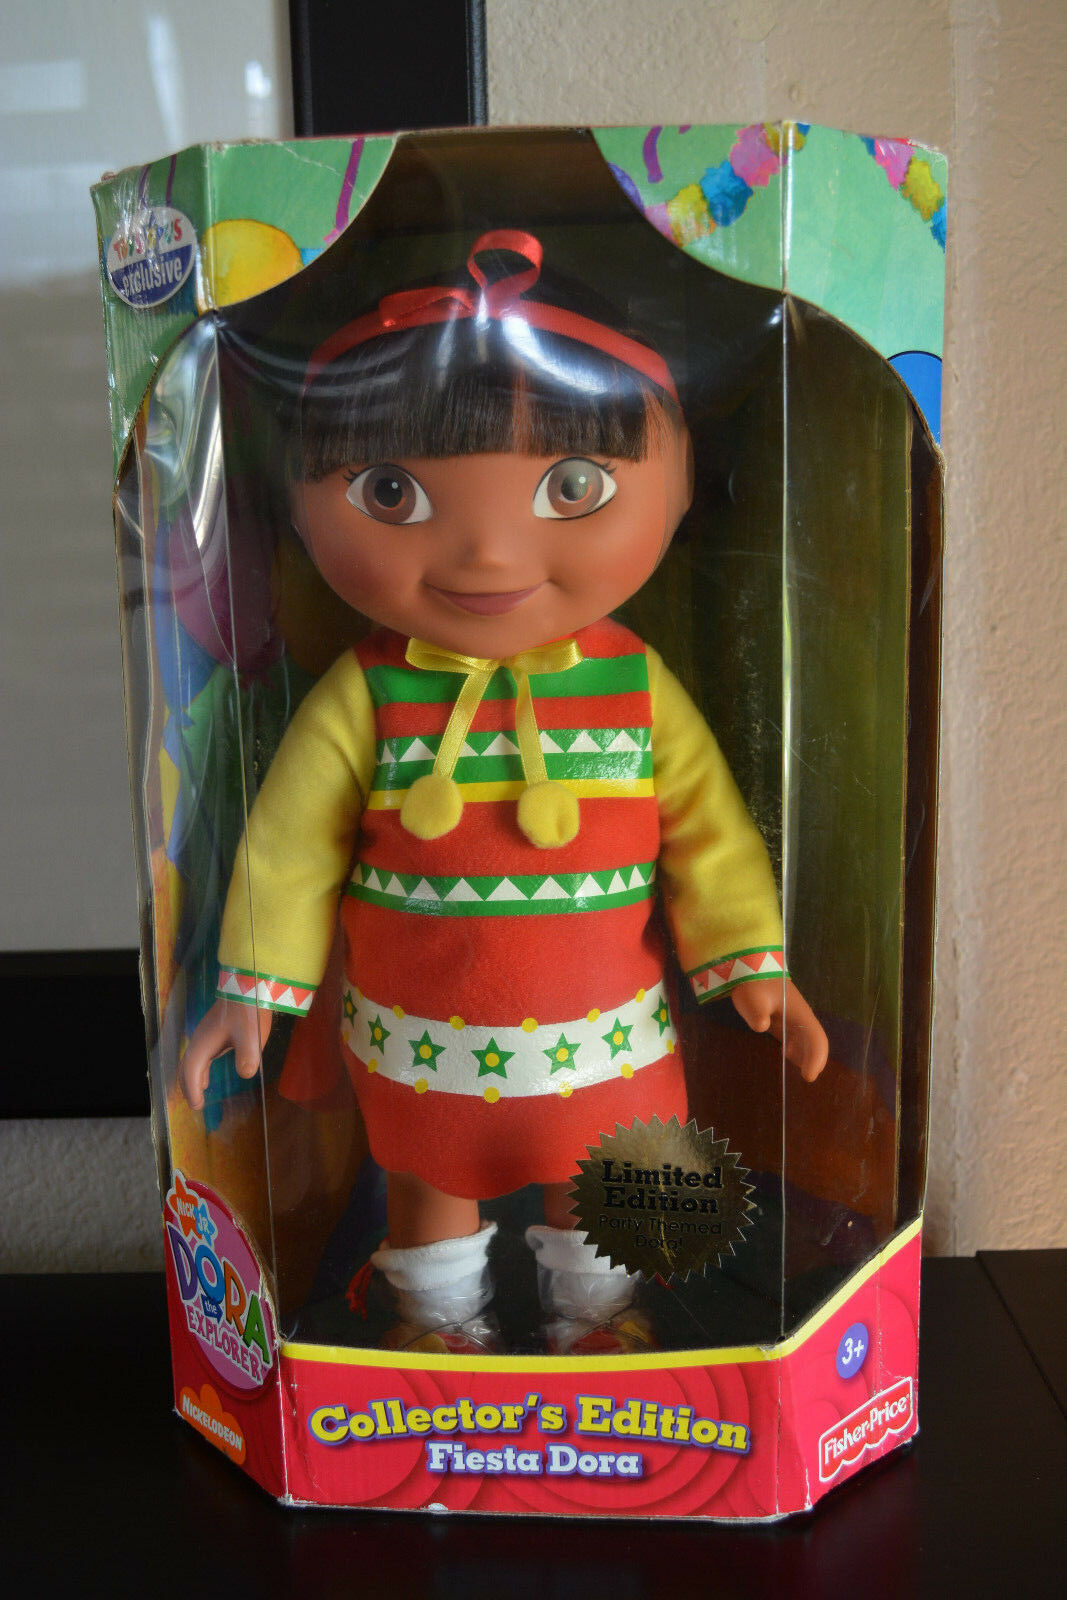 Dora the Explorer Collector's Edition Fiesta Dora 2006